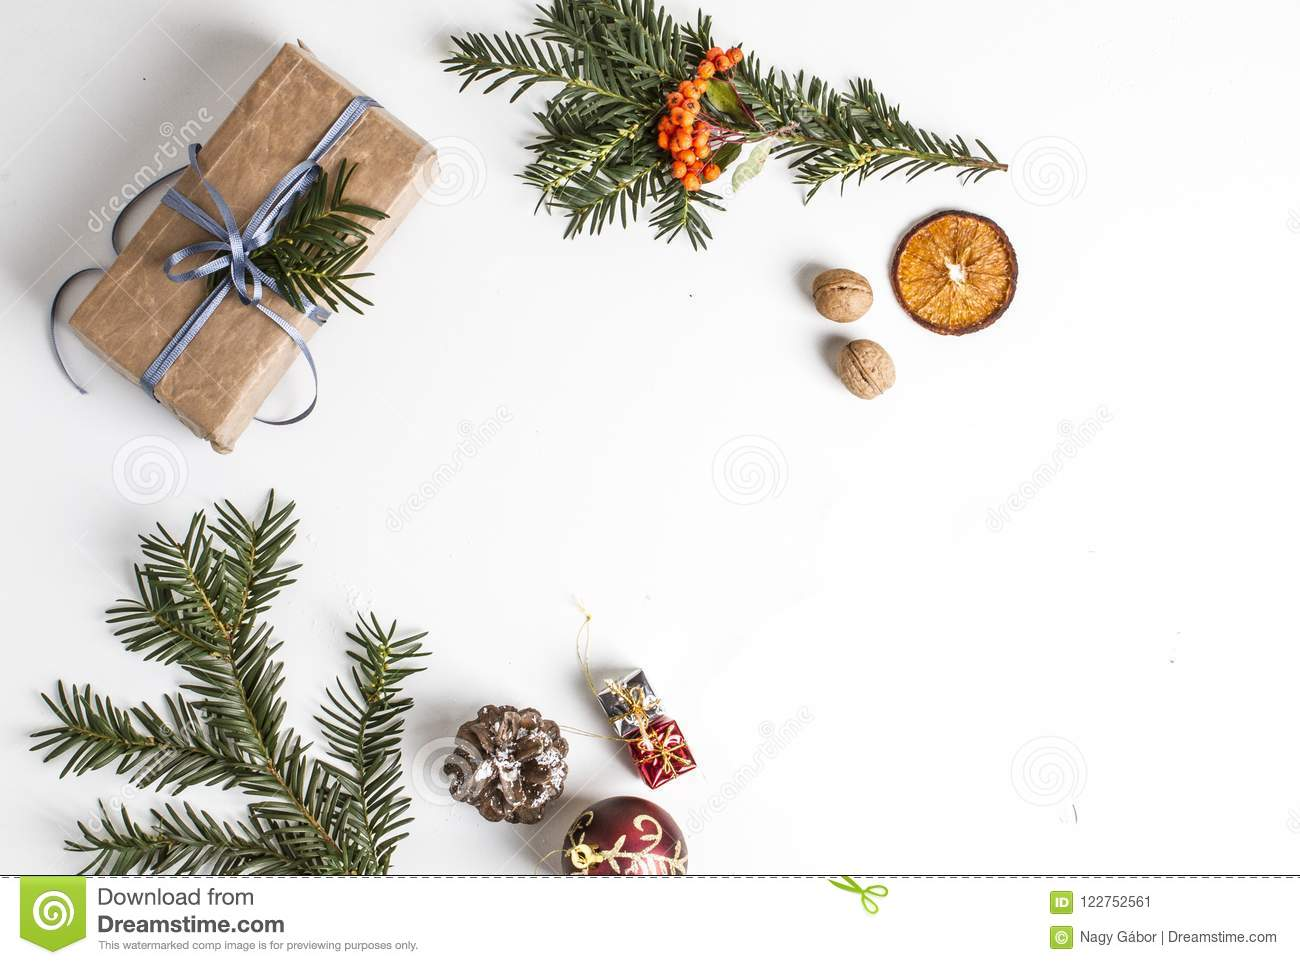 OVERHEAD RUSTIC HOMEMADE PRESENT BOX. CHRISTMAS ORNAMENTS ON WHITE BACKGROUND